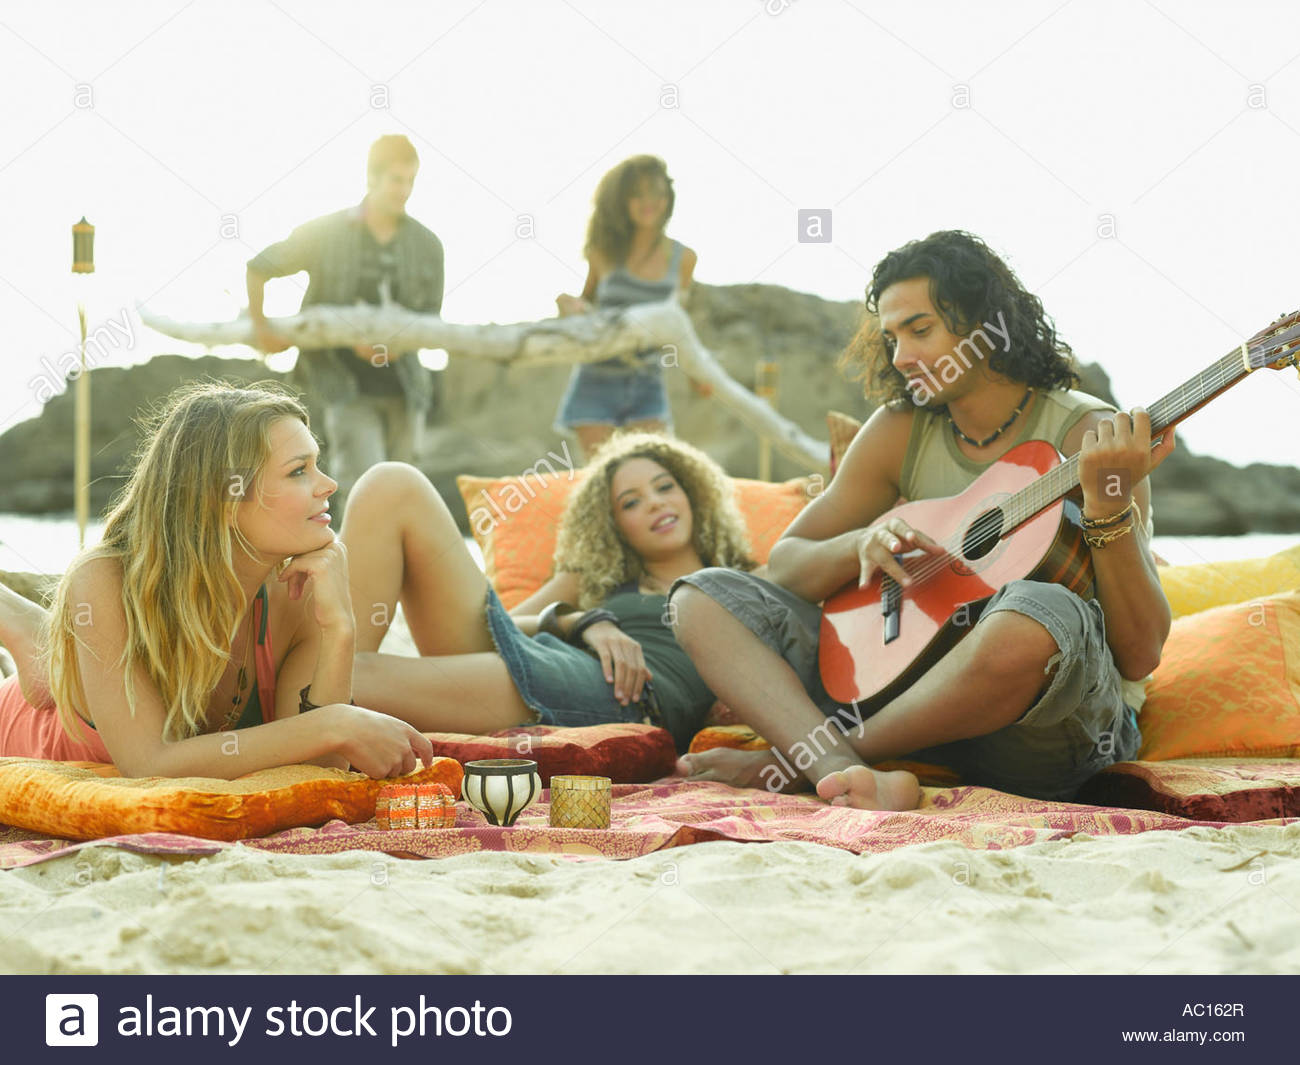 Young man playing the guitar with two young women lying beside him - Stock Image